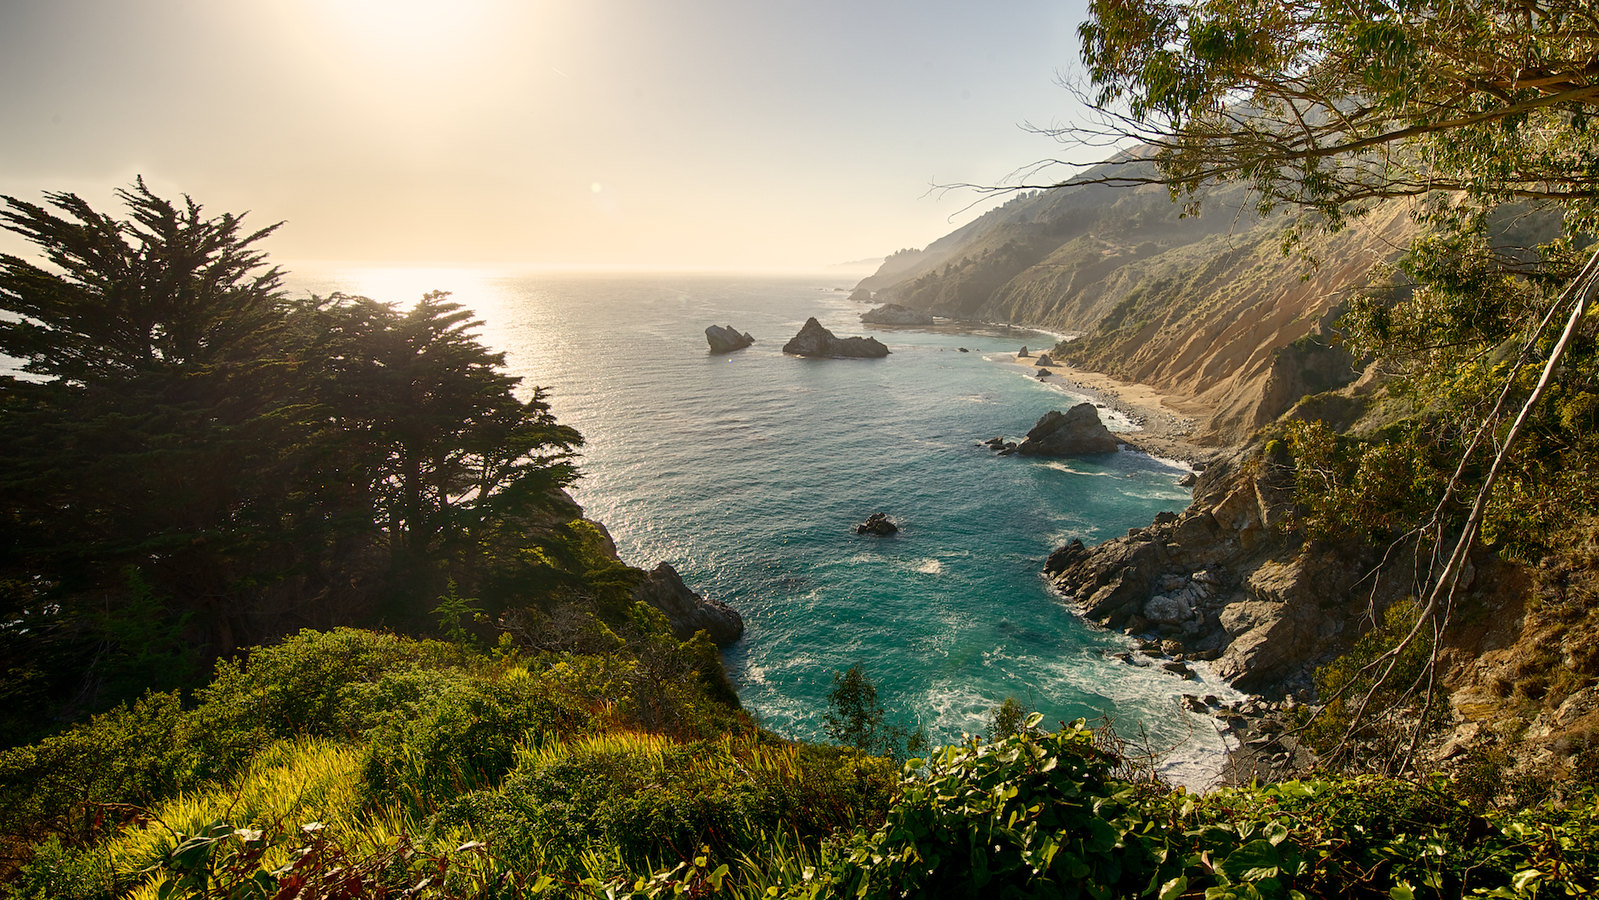 View from Highway One in Big Sur, California